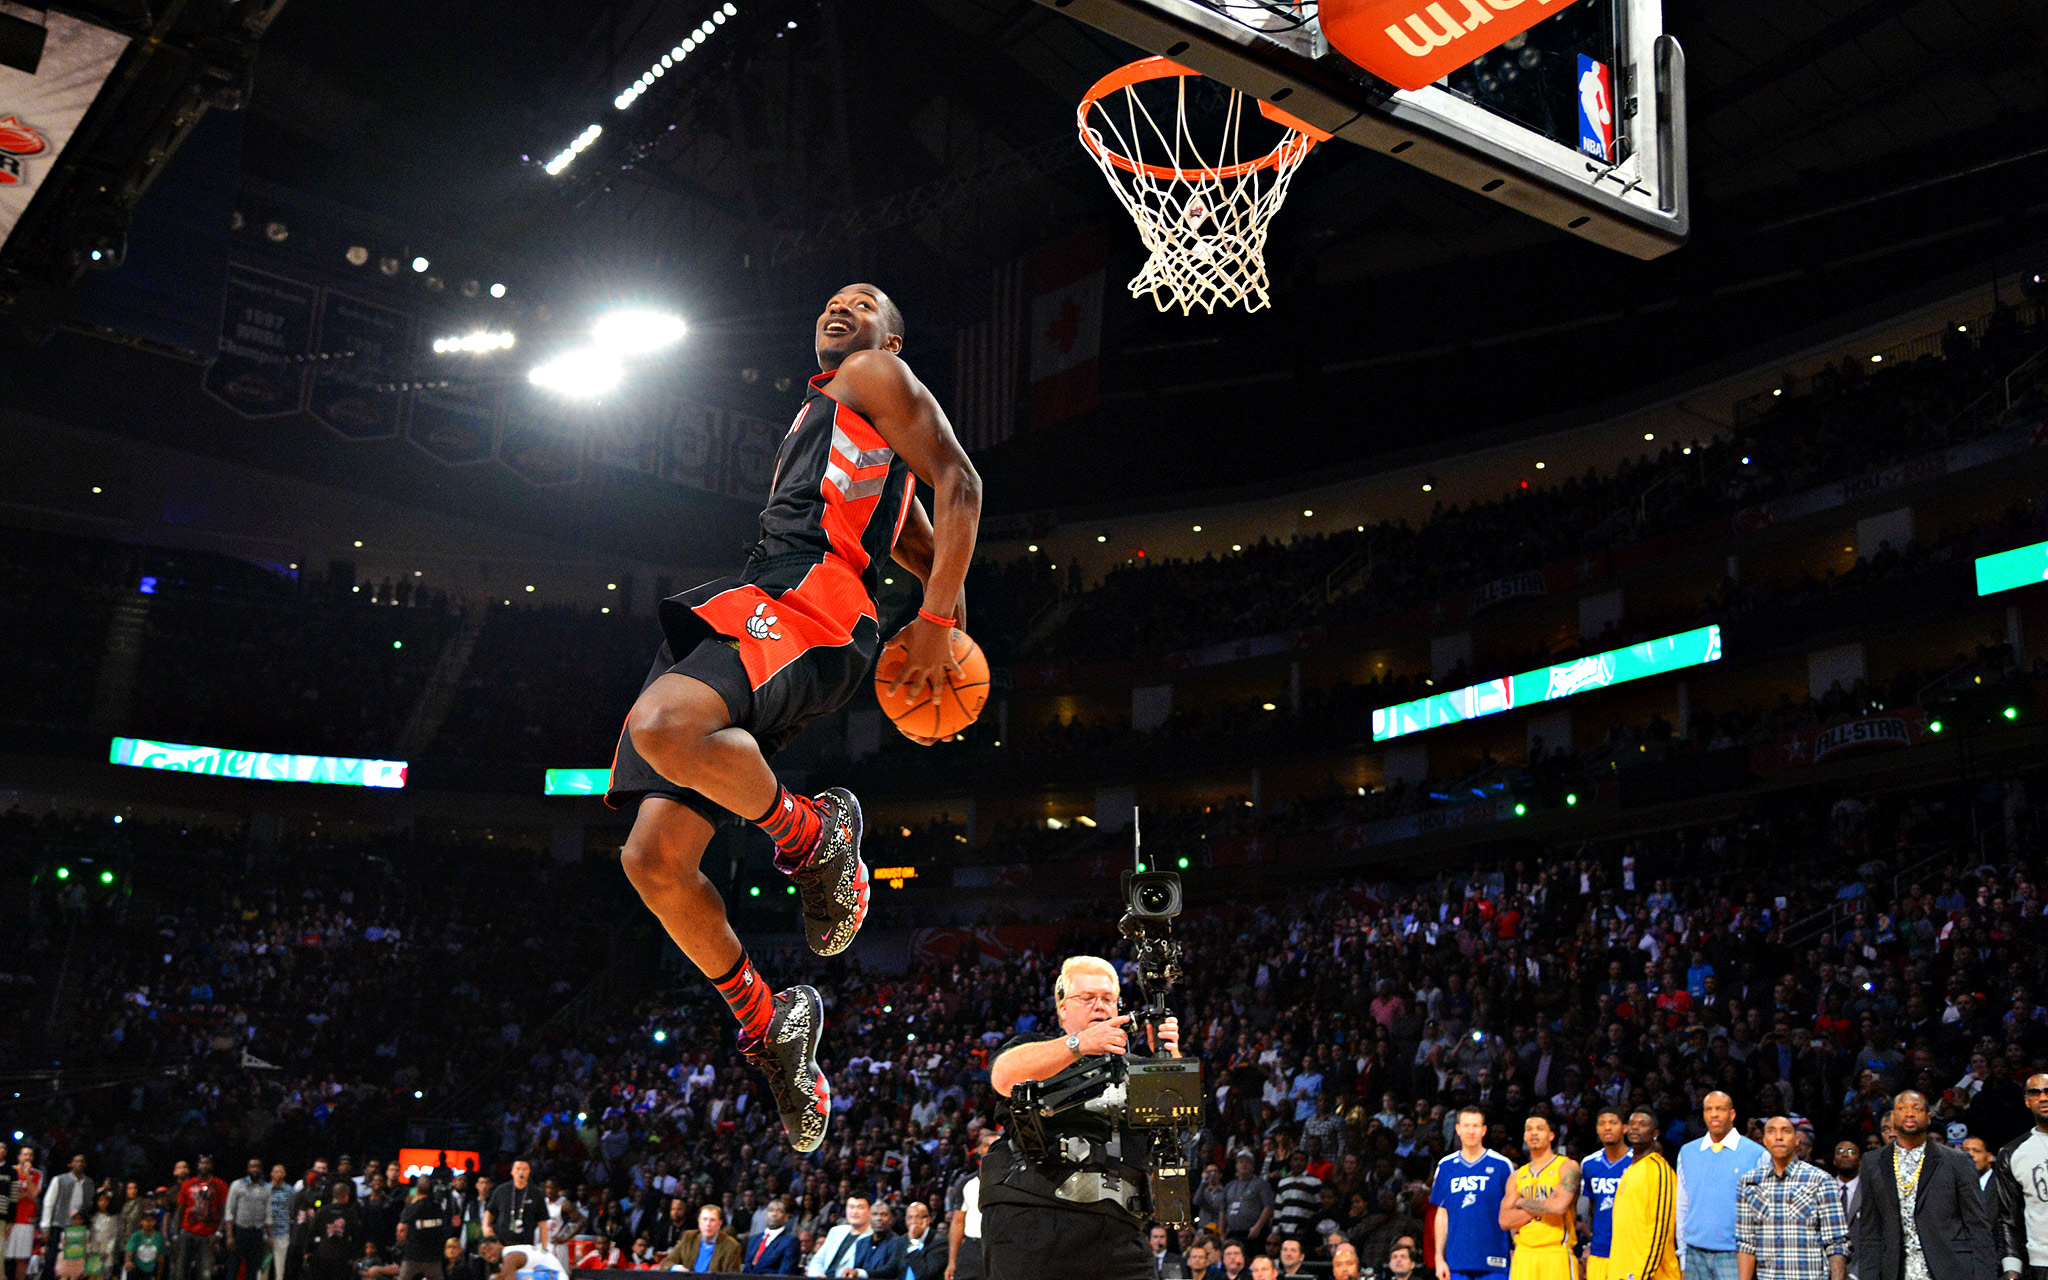 Animated Name Wallpaper Maker Art Of The Day Terrence Ross Dunks On Kenneth Faried